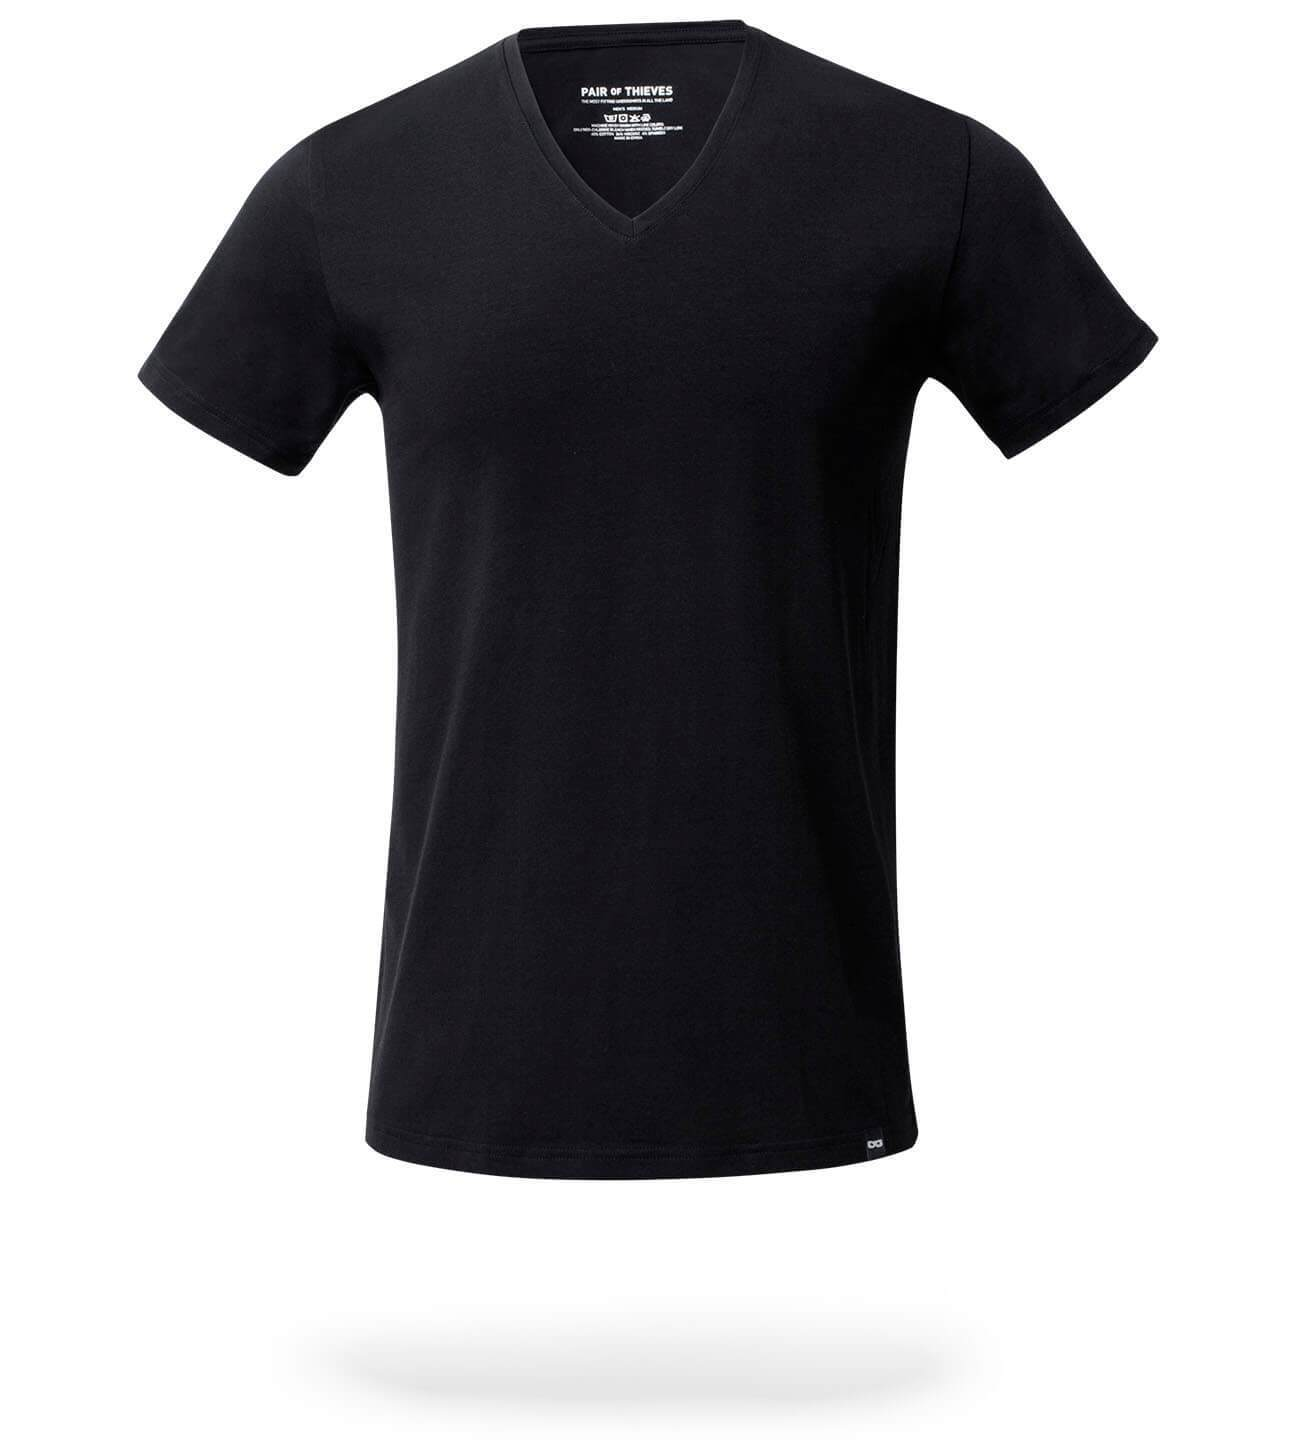 SP17_UNDERSHIRT_FRONT_BLACK_V